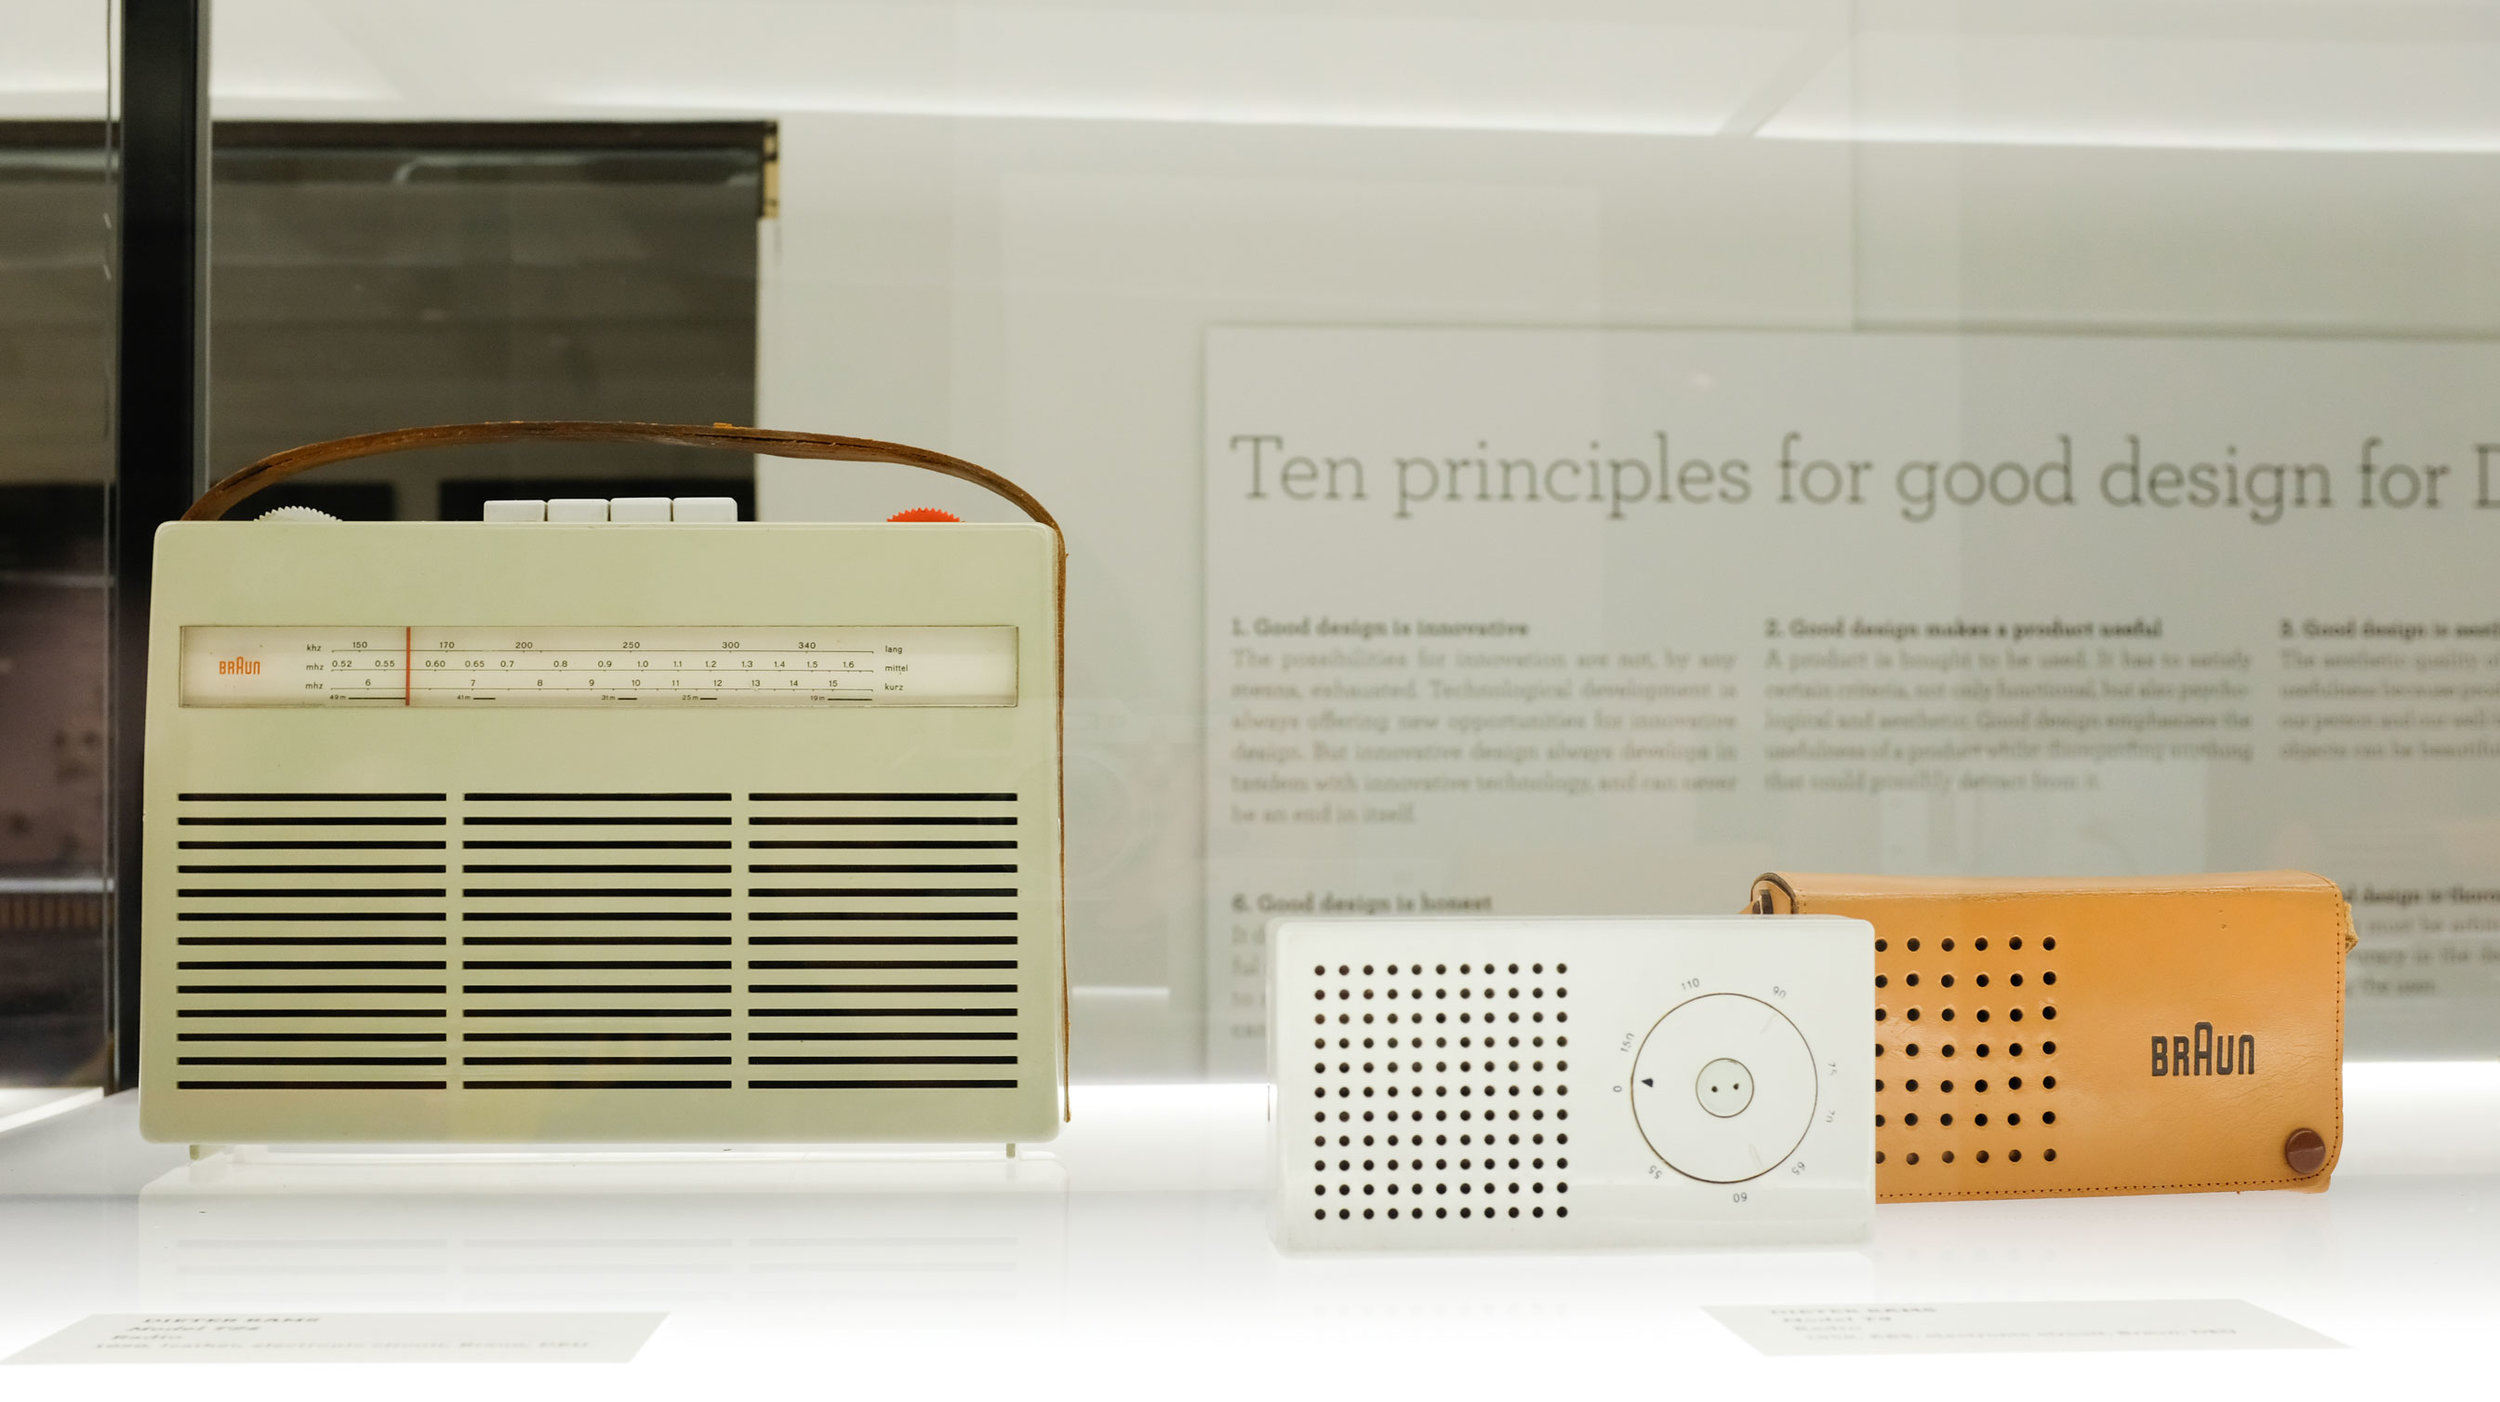 A little Dieter Rams with his 10 design principles in the background.